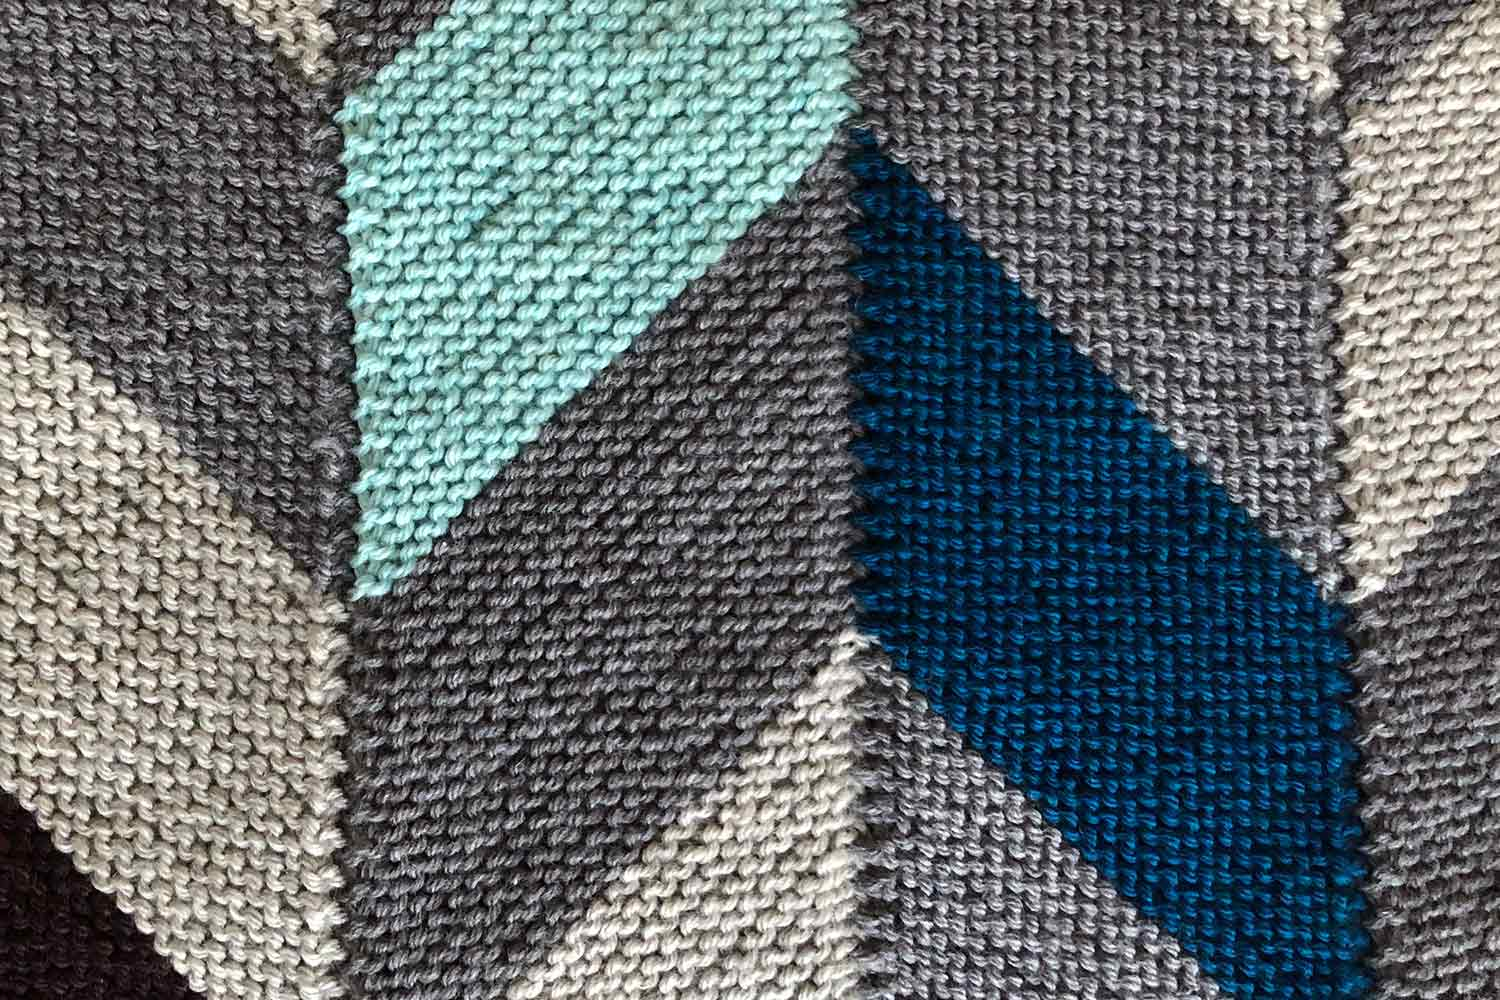 Right side of garter stitch modular knitting with colourful parallelogram shapes joined to created chevrons.